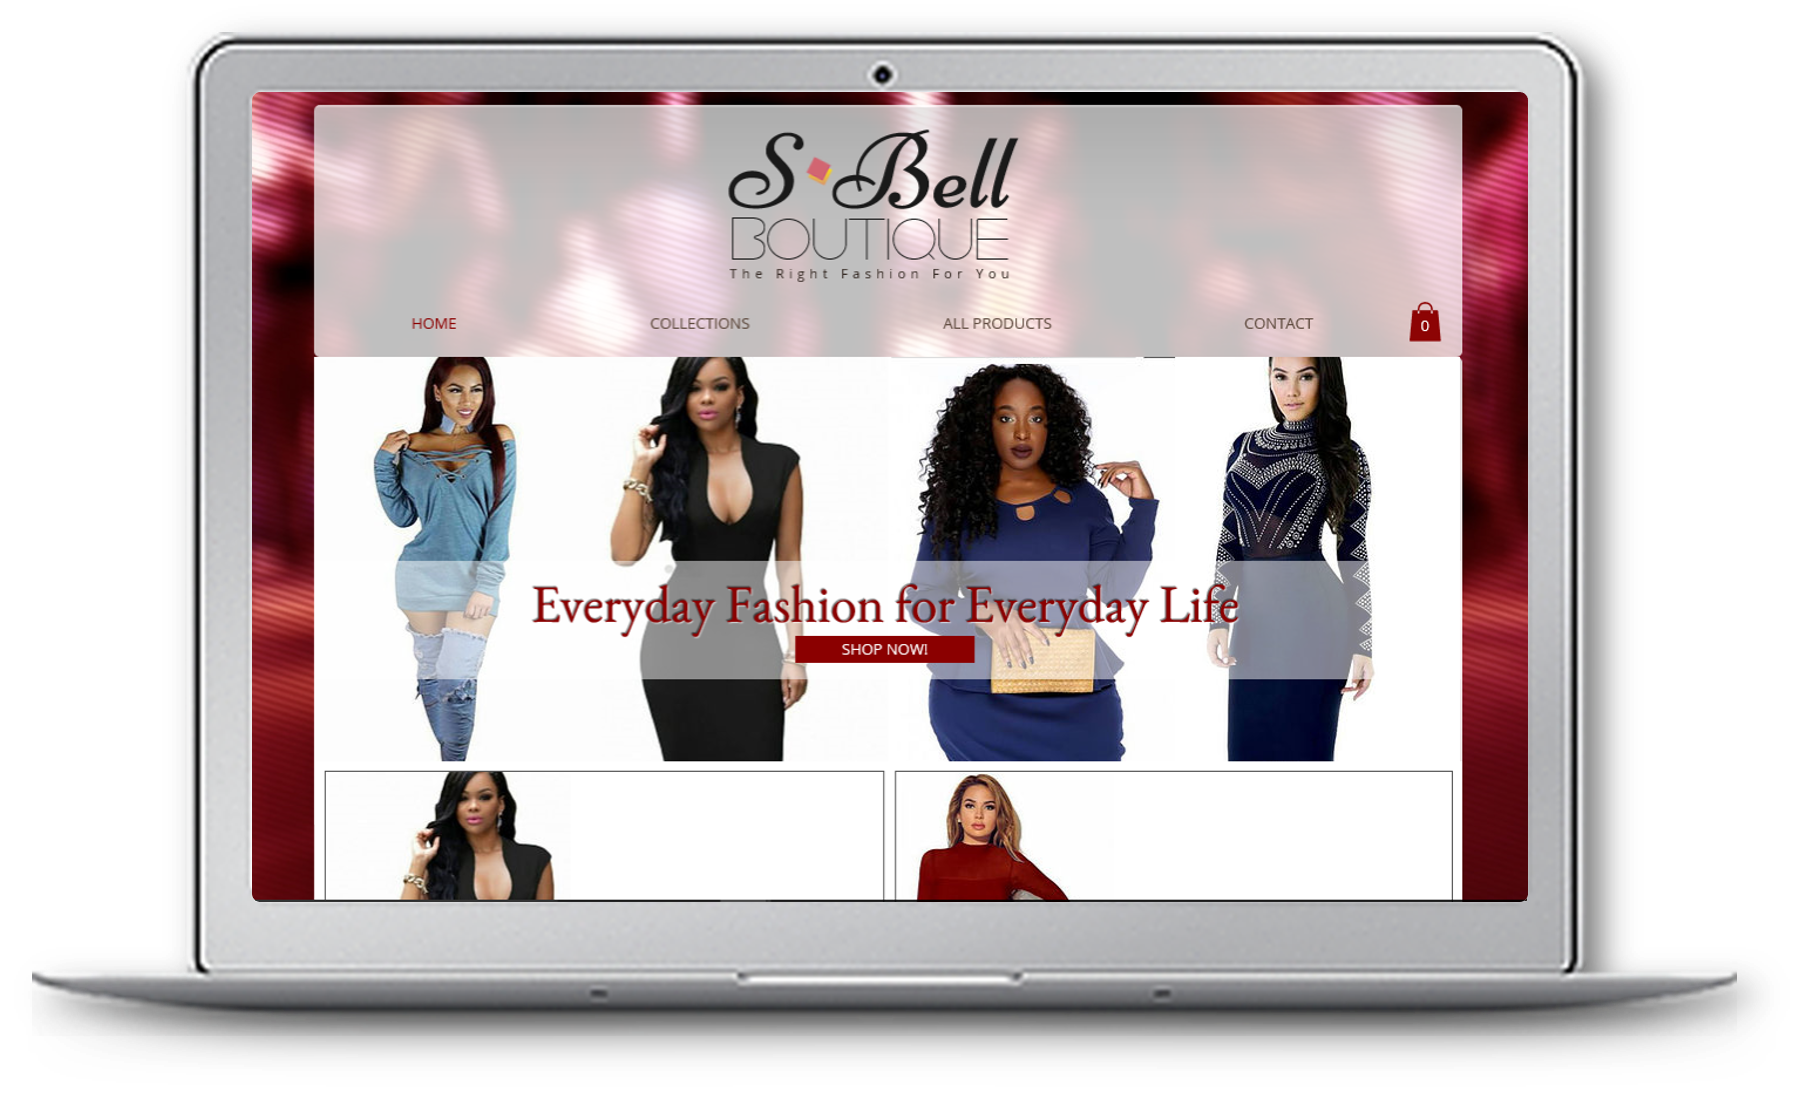 S. BELL BOUTIQUE